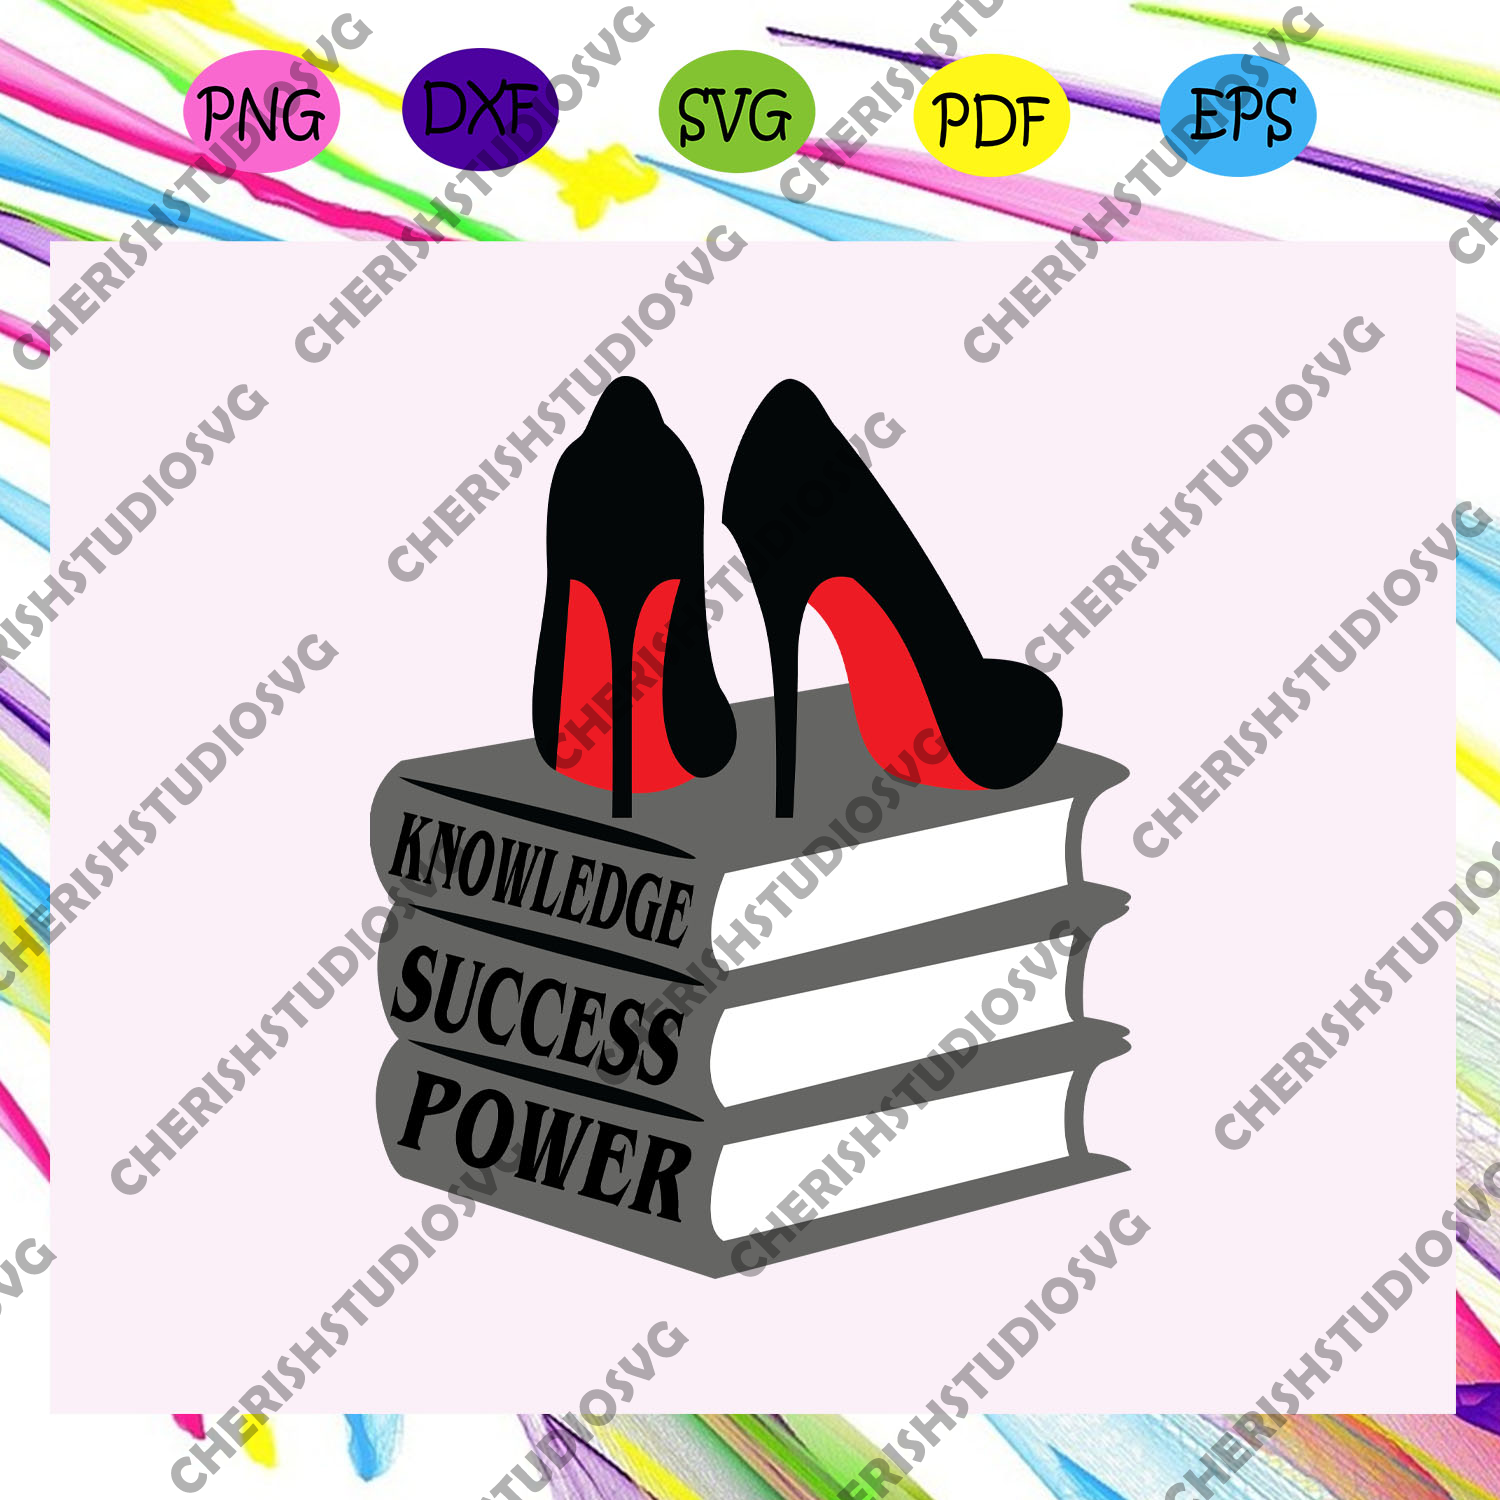 Knowledge success power svg, Knowledge svg, feminist svg, feminist shirt, feminist art,feminist gift, feminist poster, the future is female, gift for her, gift for him, svg files for cricut, svg files